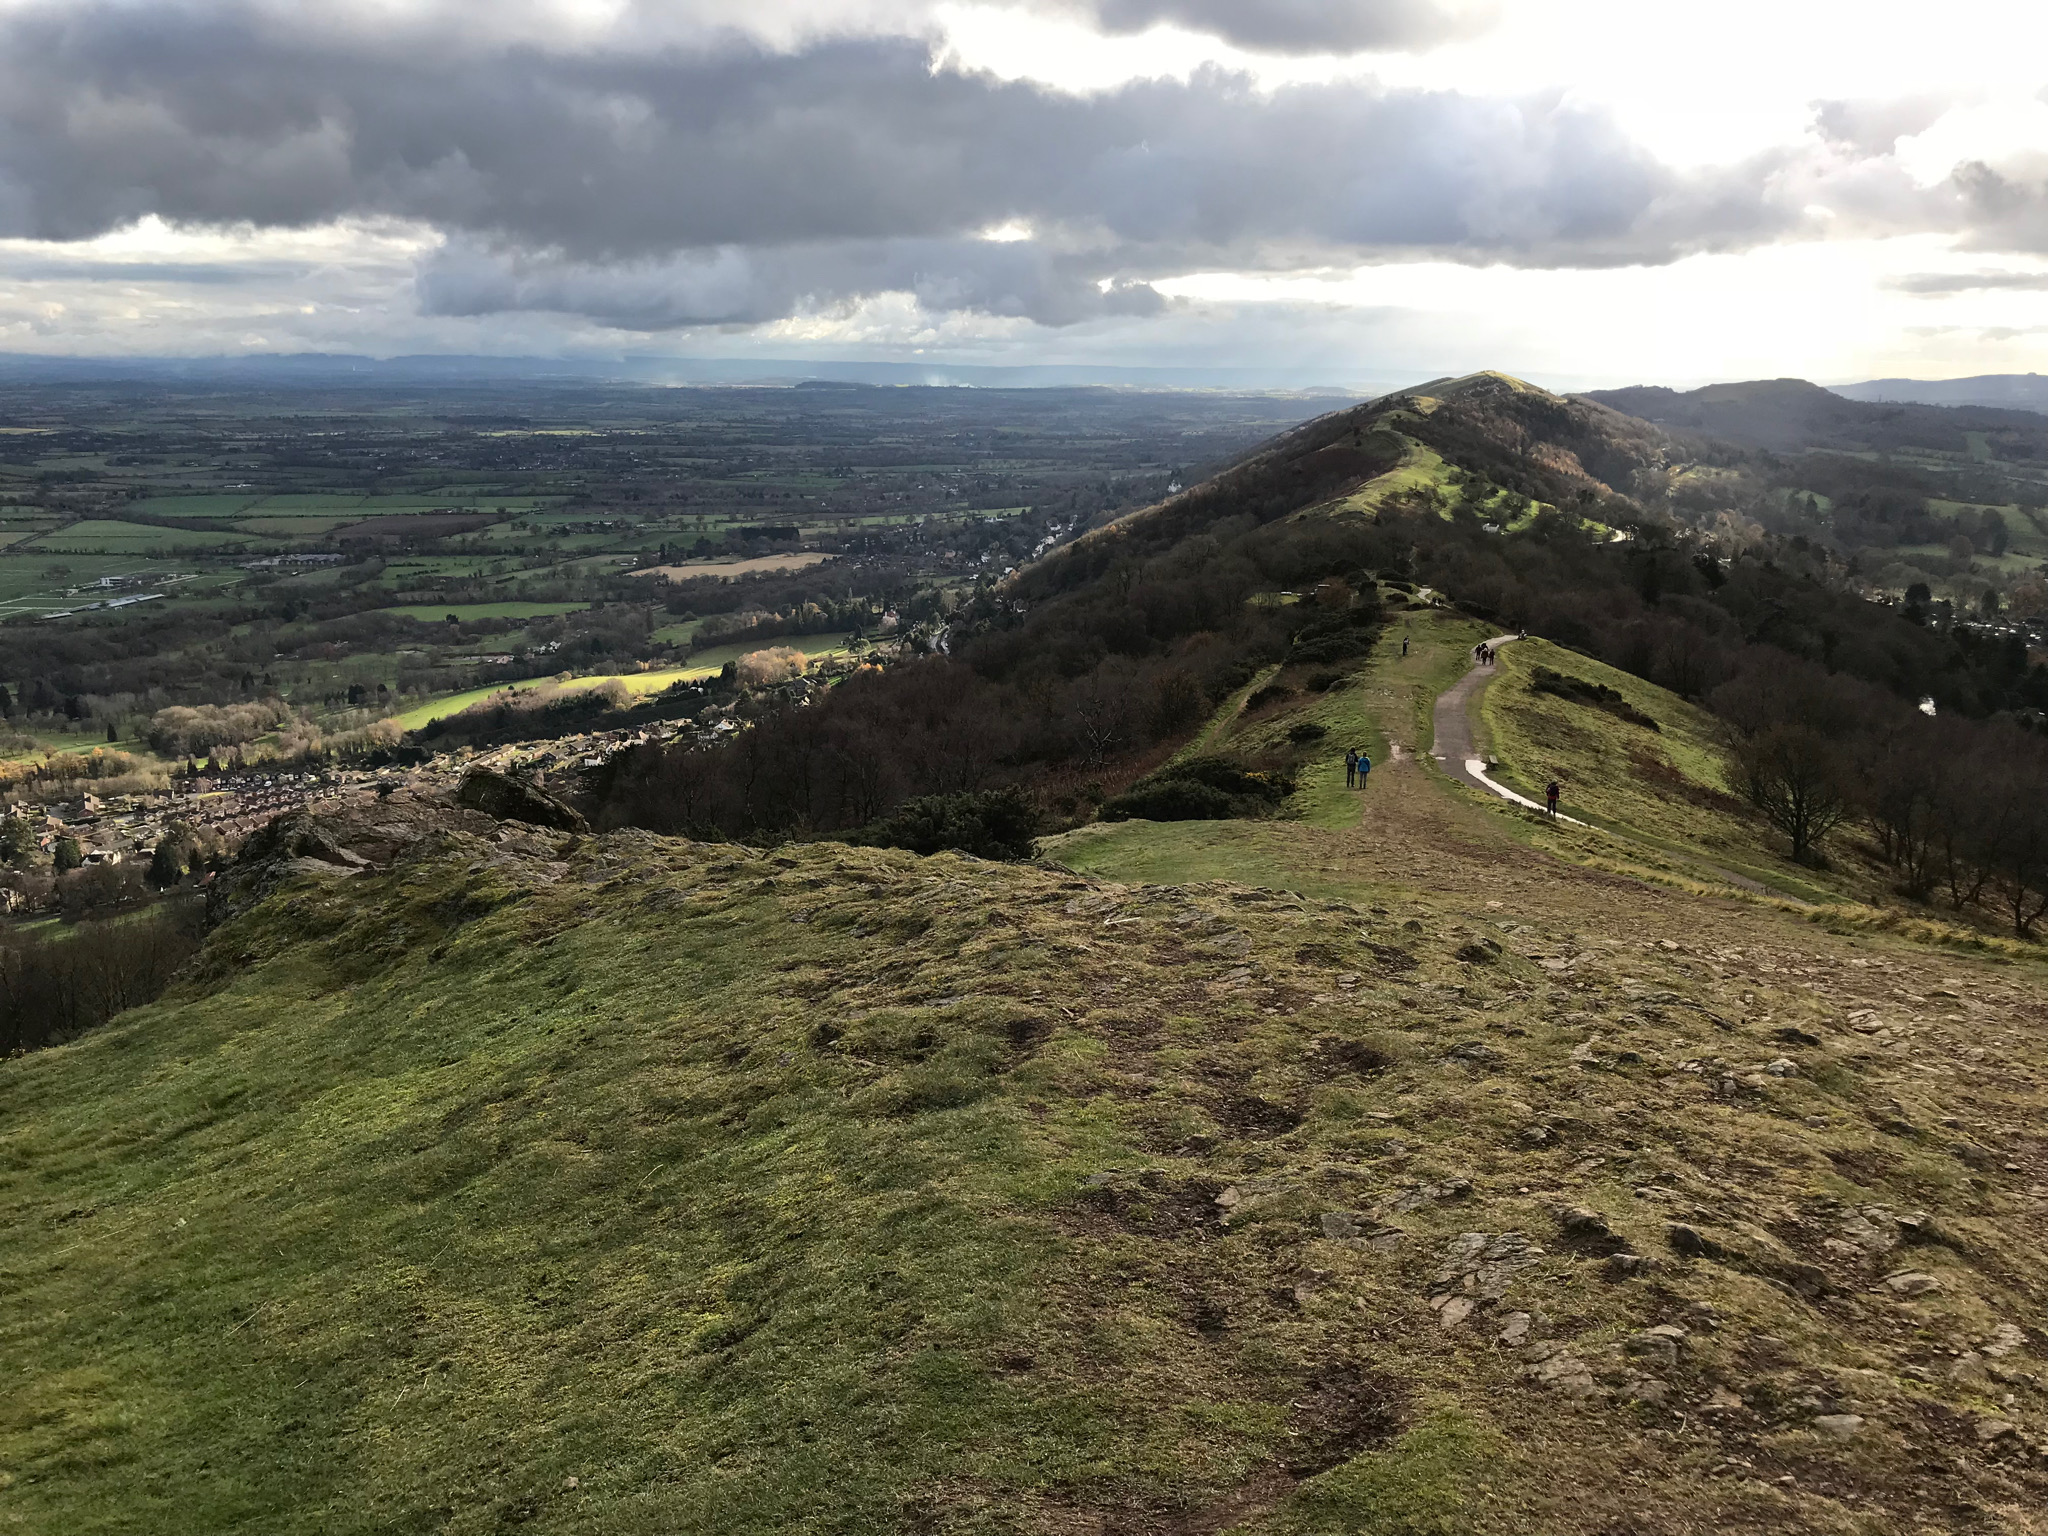 View from the Hills towards Hereford